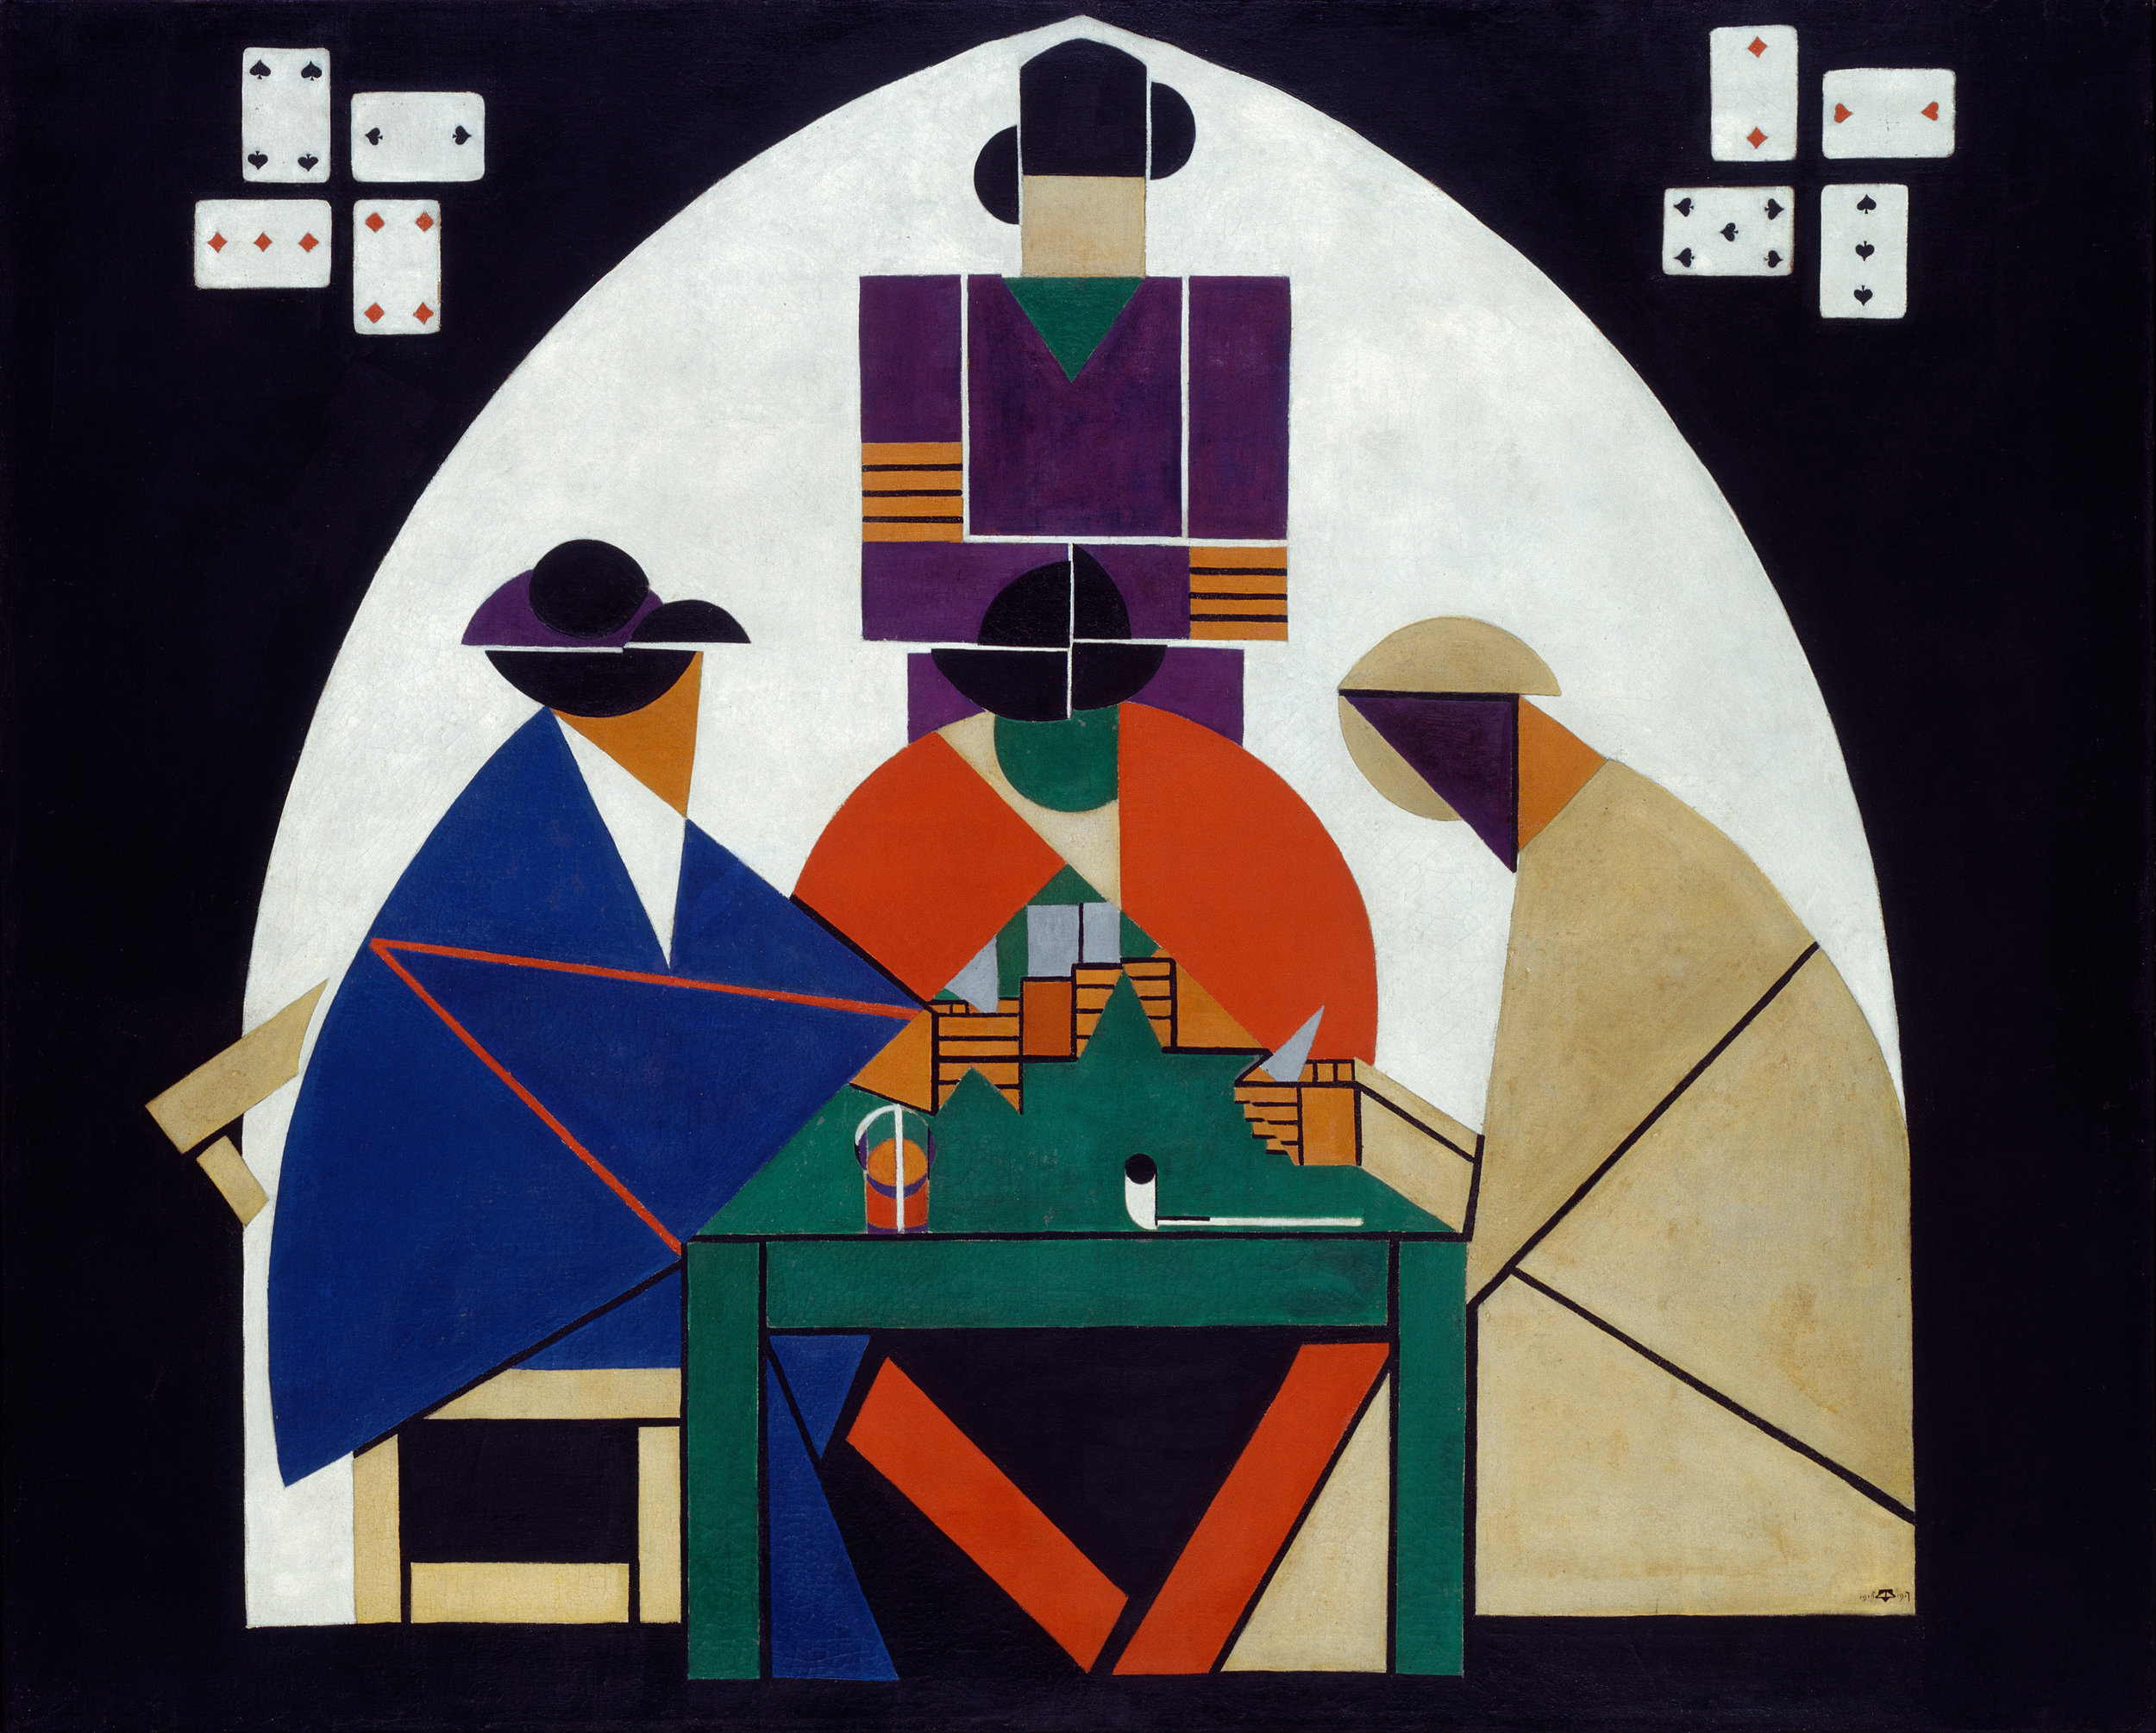 Theo_van_Doesburg_-_Card_players_-_Google_Art_Project.jpg